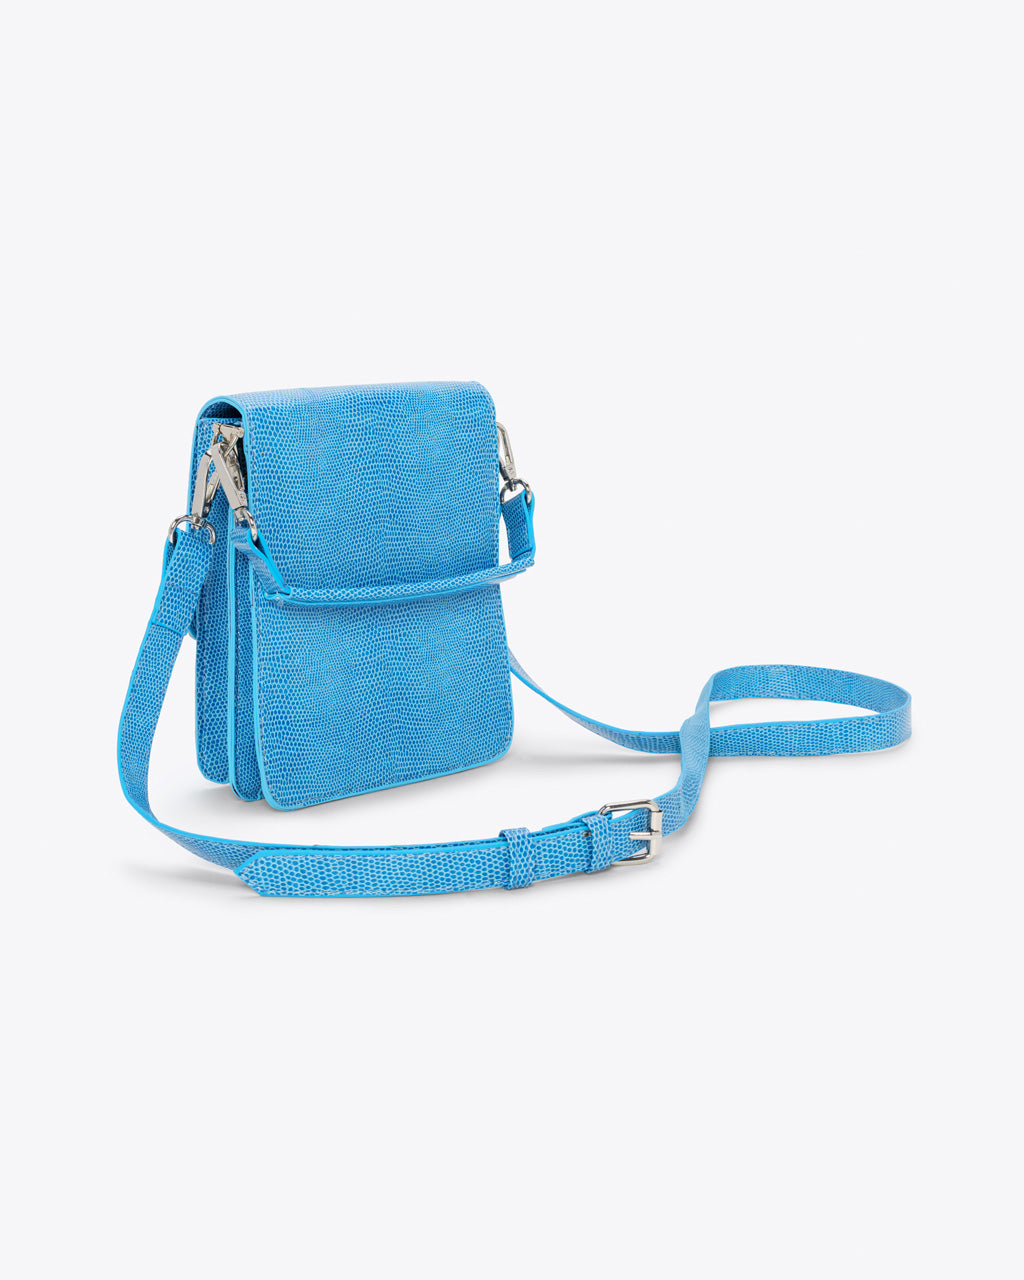 blue mini crossbody purse with an adjustable strap and a top handle